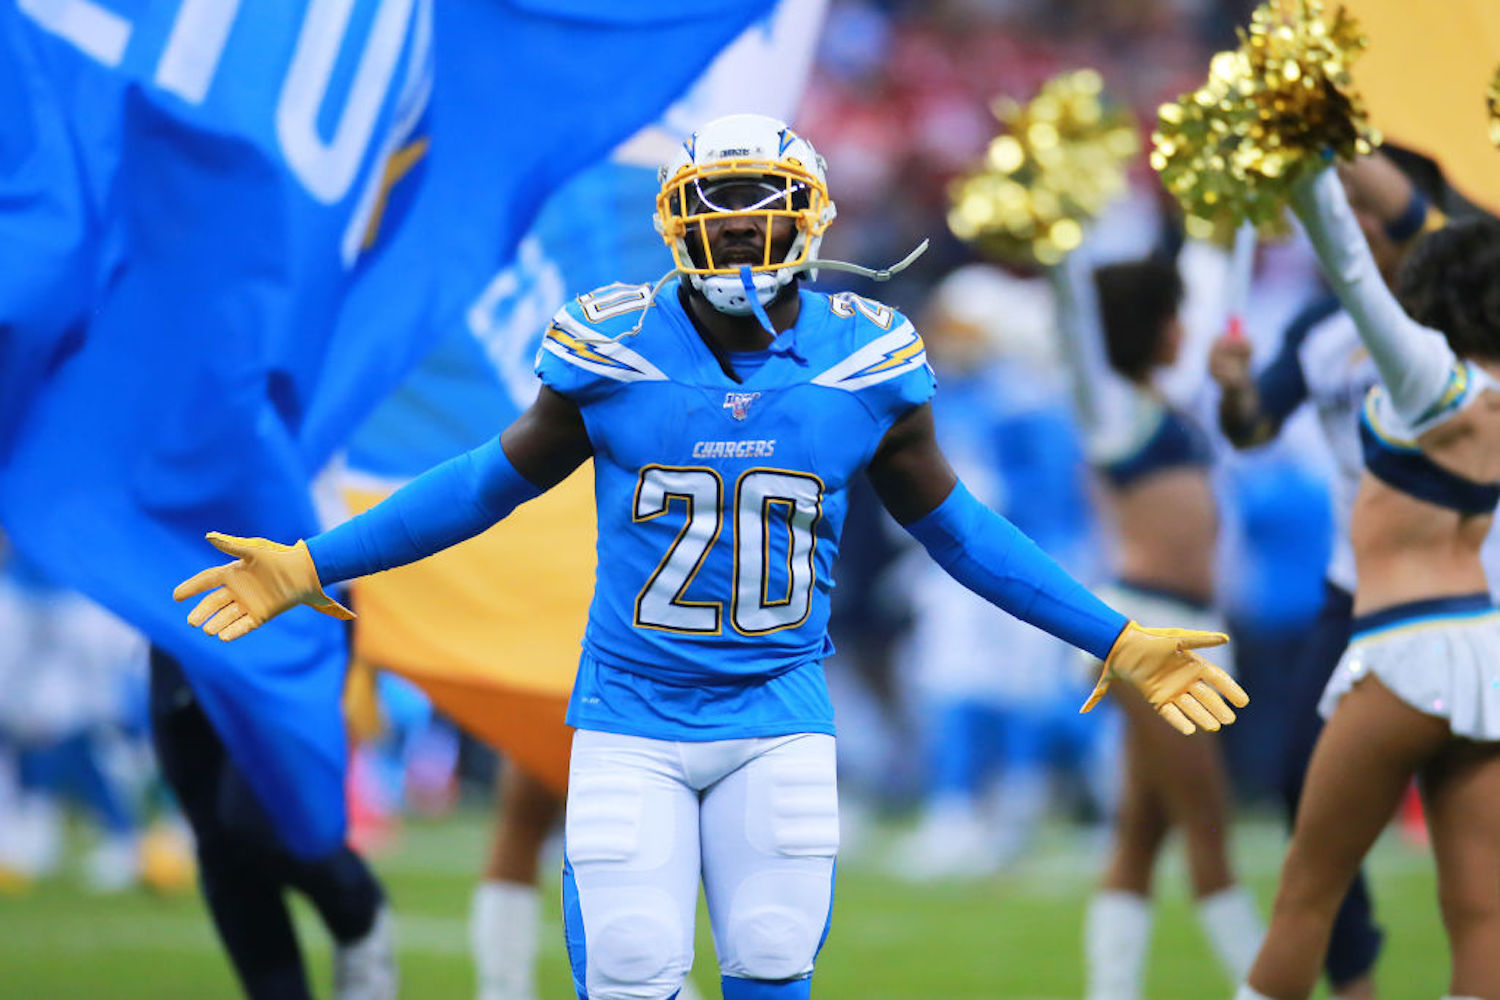 The LA Chargers Just Gave Up on Their $2.7 Million All-Pro